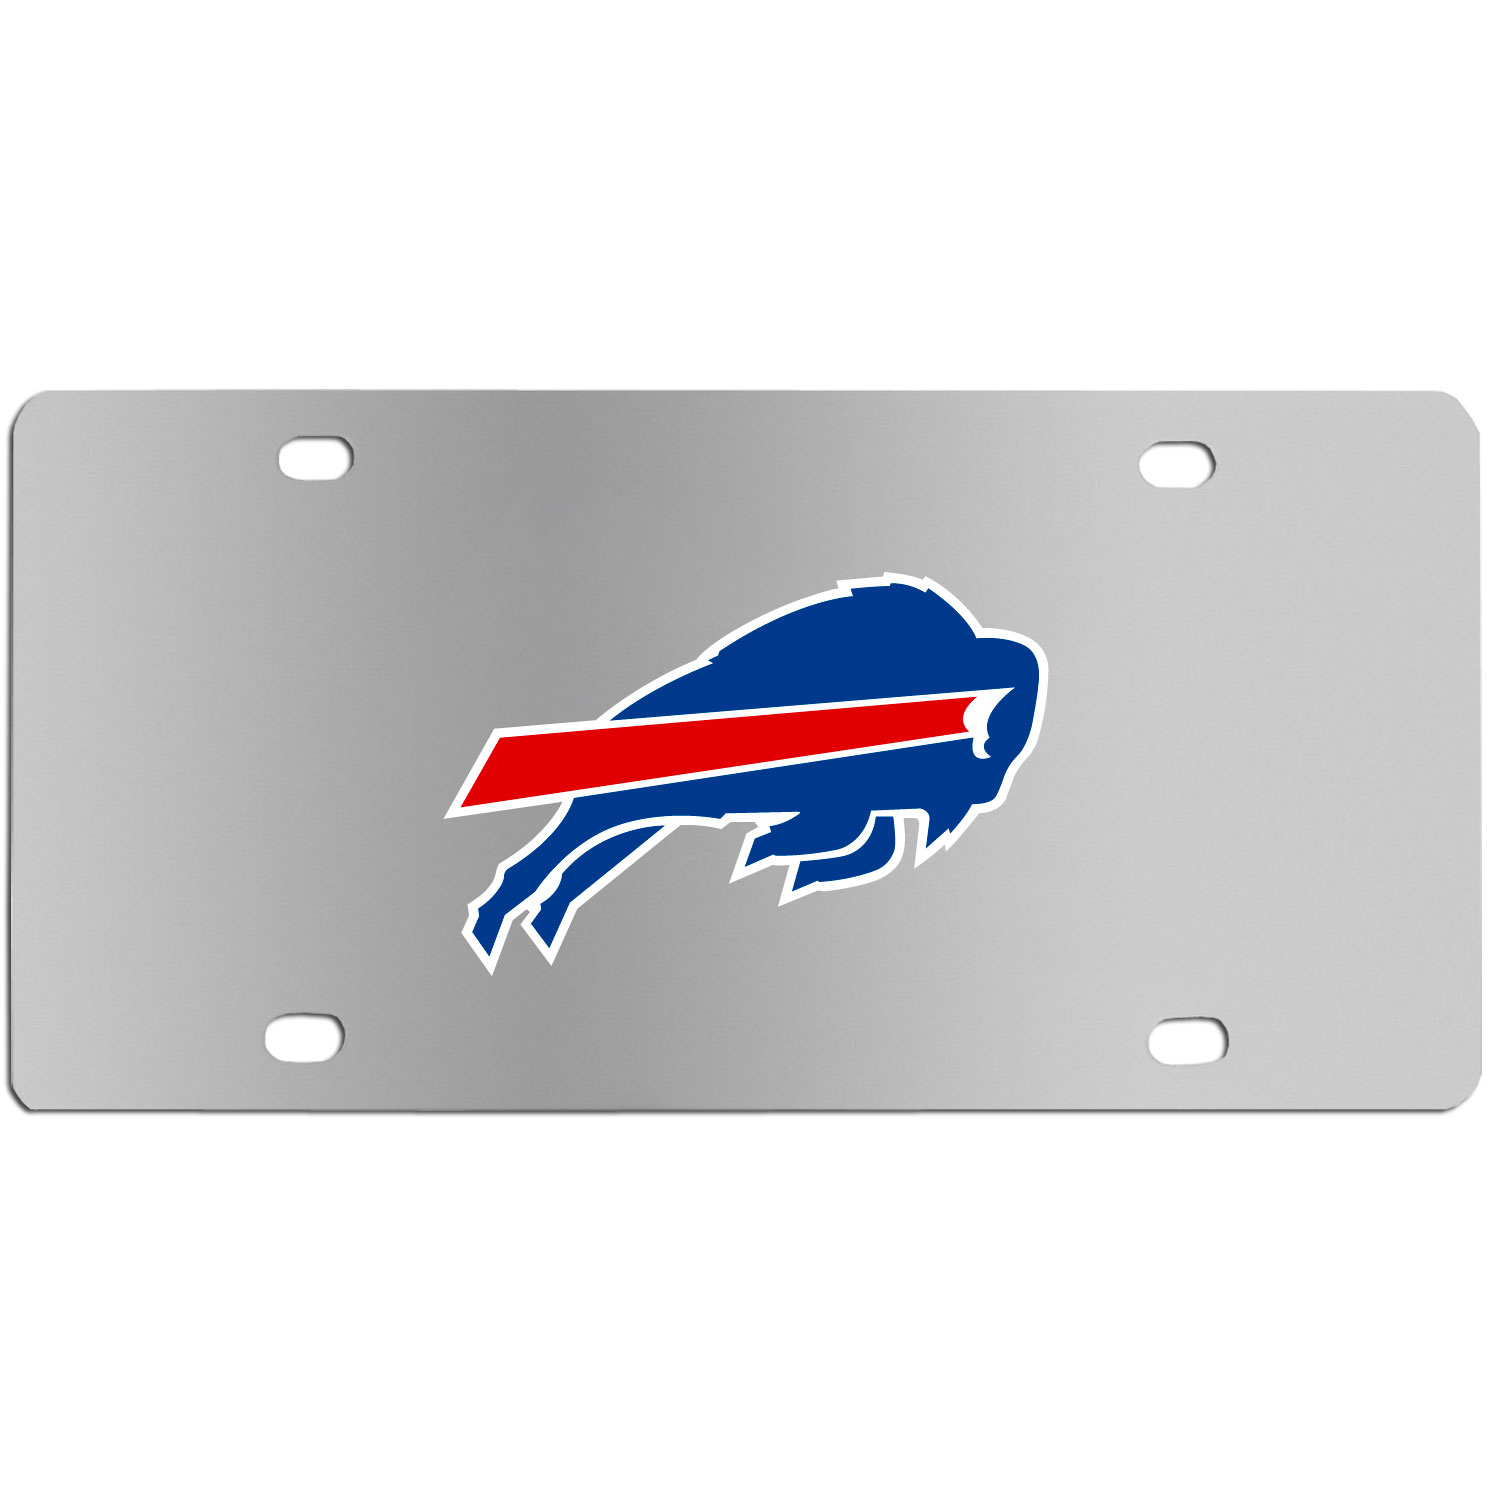 Buffalo Bills Steel License Plate Wall Plaque - This high-quality stainless steel license plate features a detailed team logo on a the polished surface. The attractive plate is perfect for wall mounting in your home or office to become the perfect die-hard Buffalo Bills fan decor.